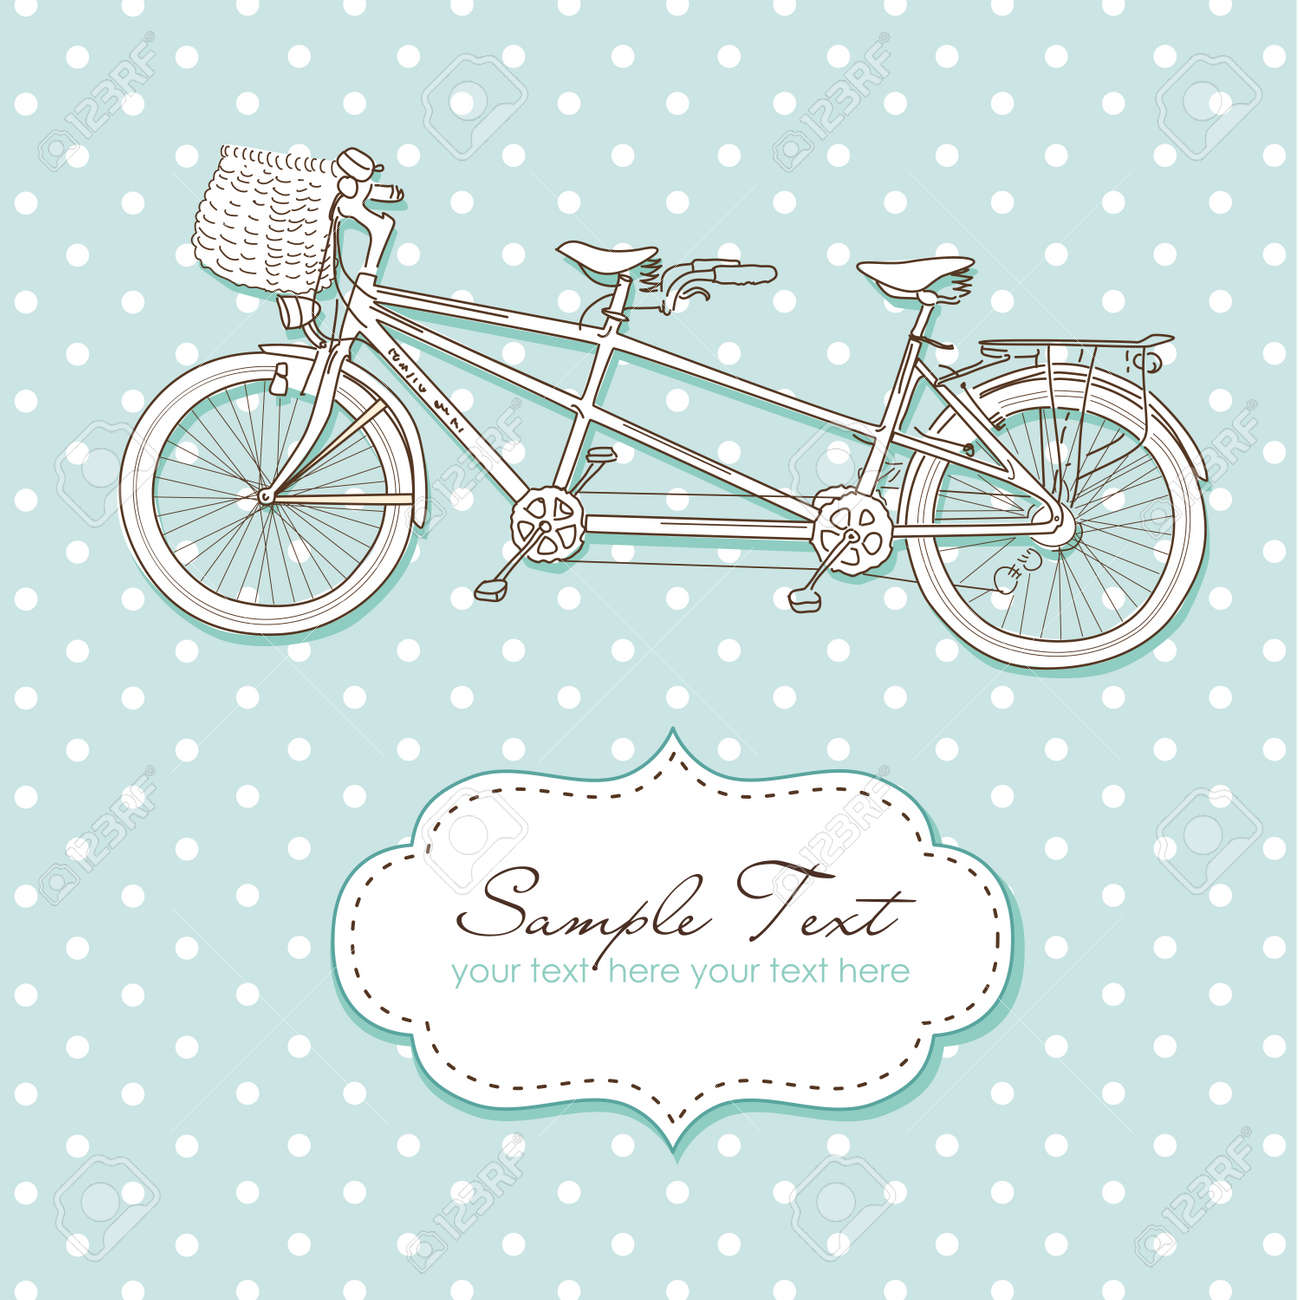 Tandem Bicycle Wedding Invitation with polka dot background Stock Vector - 15158499